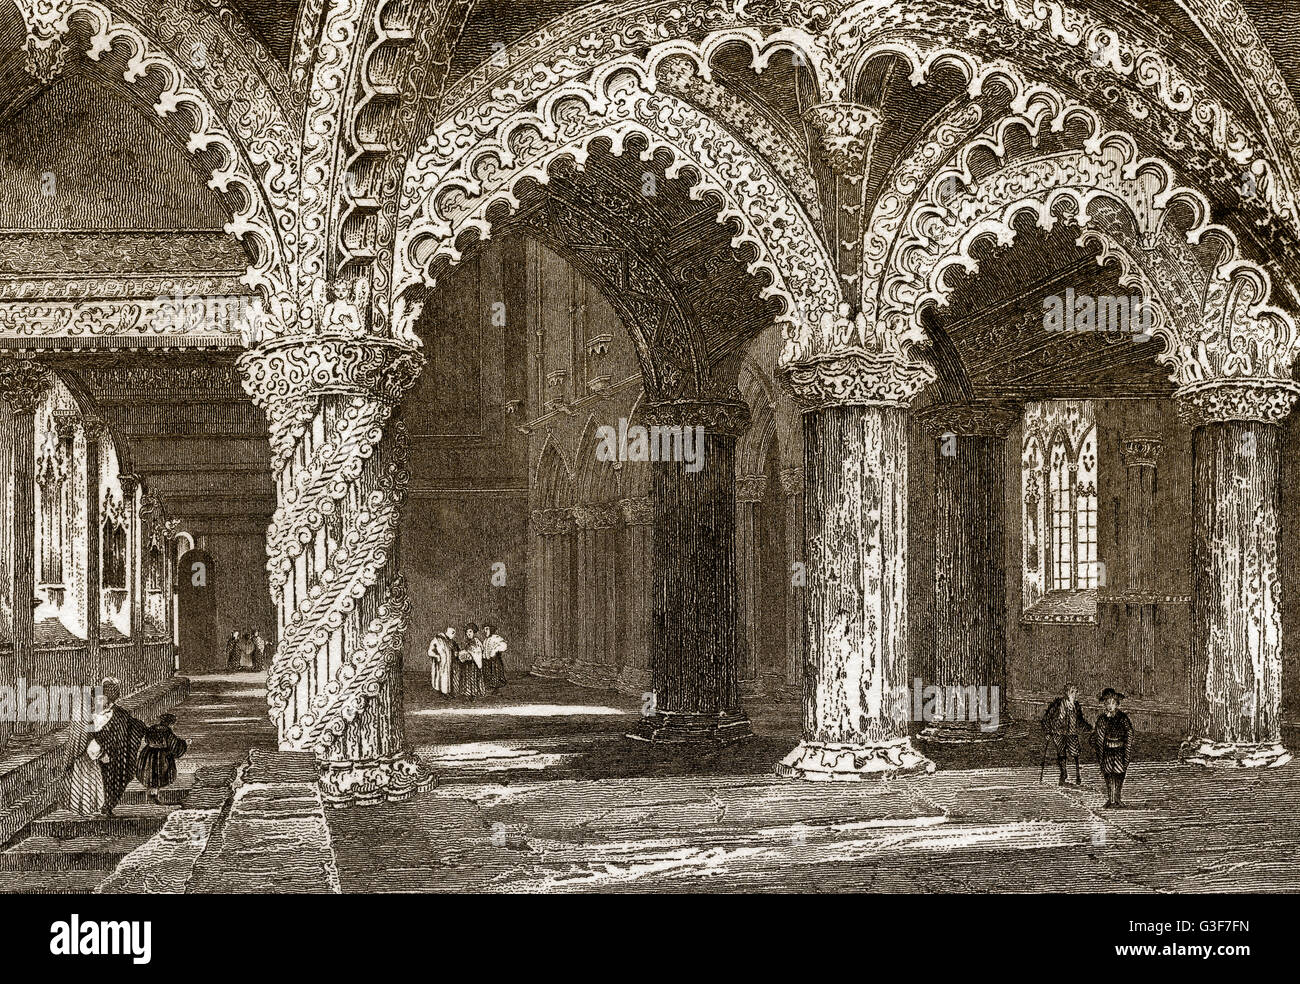 Rosslyn Chapel, the Collegiate Chapel of St Matthew, Roslin, Midlothian, Scotland, 19th century - Stock Image